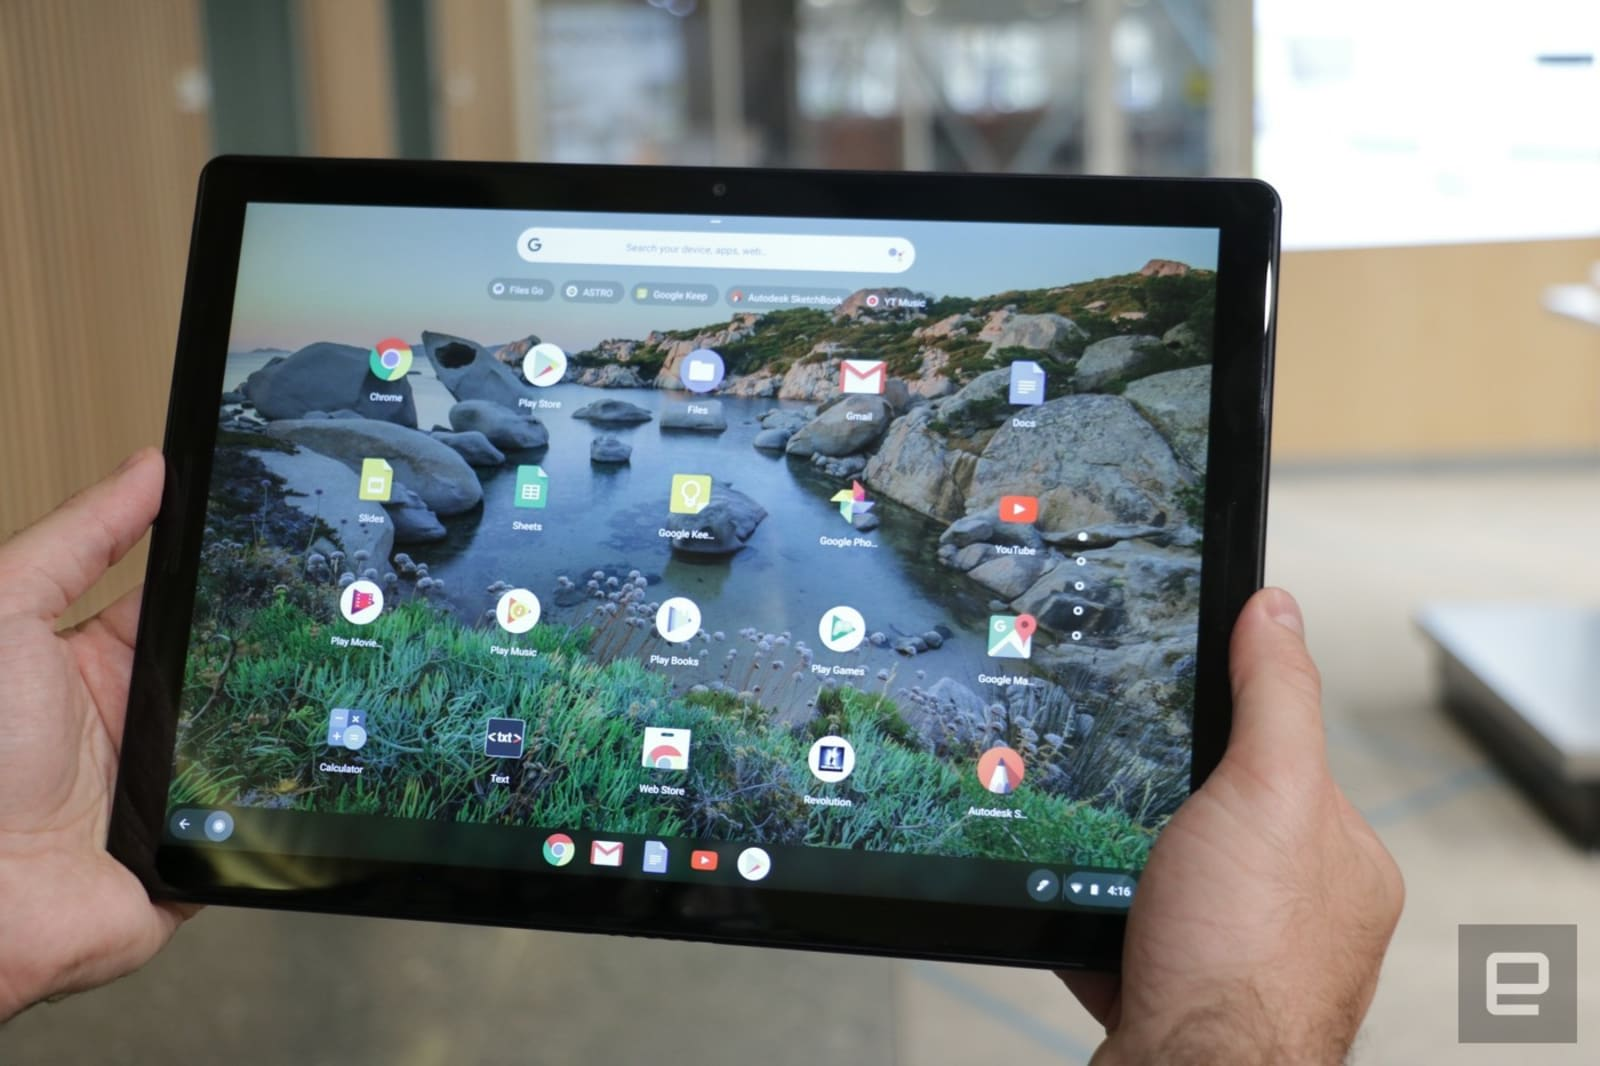 Latest Chrome OS update includes a redesigned tablet interface